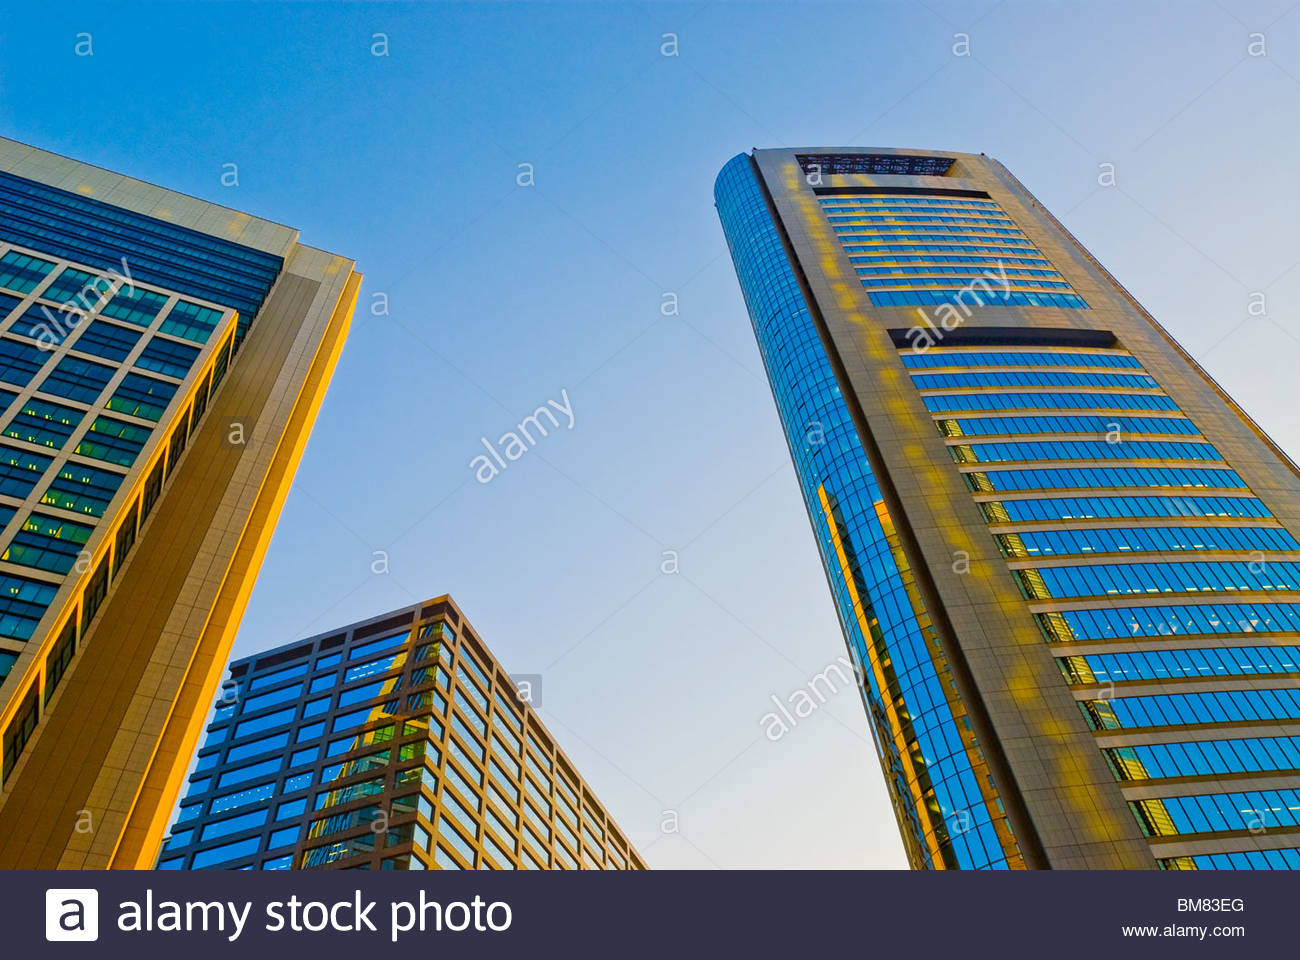 Looking Up Skyscrapers in Shiodome. - Stock Image